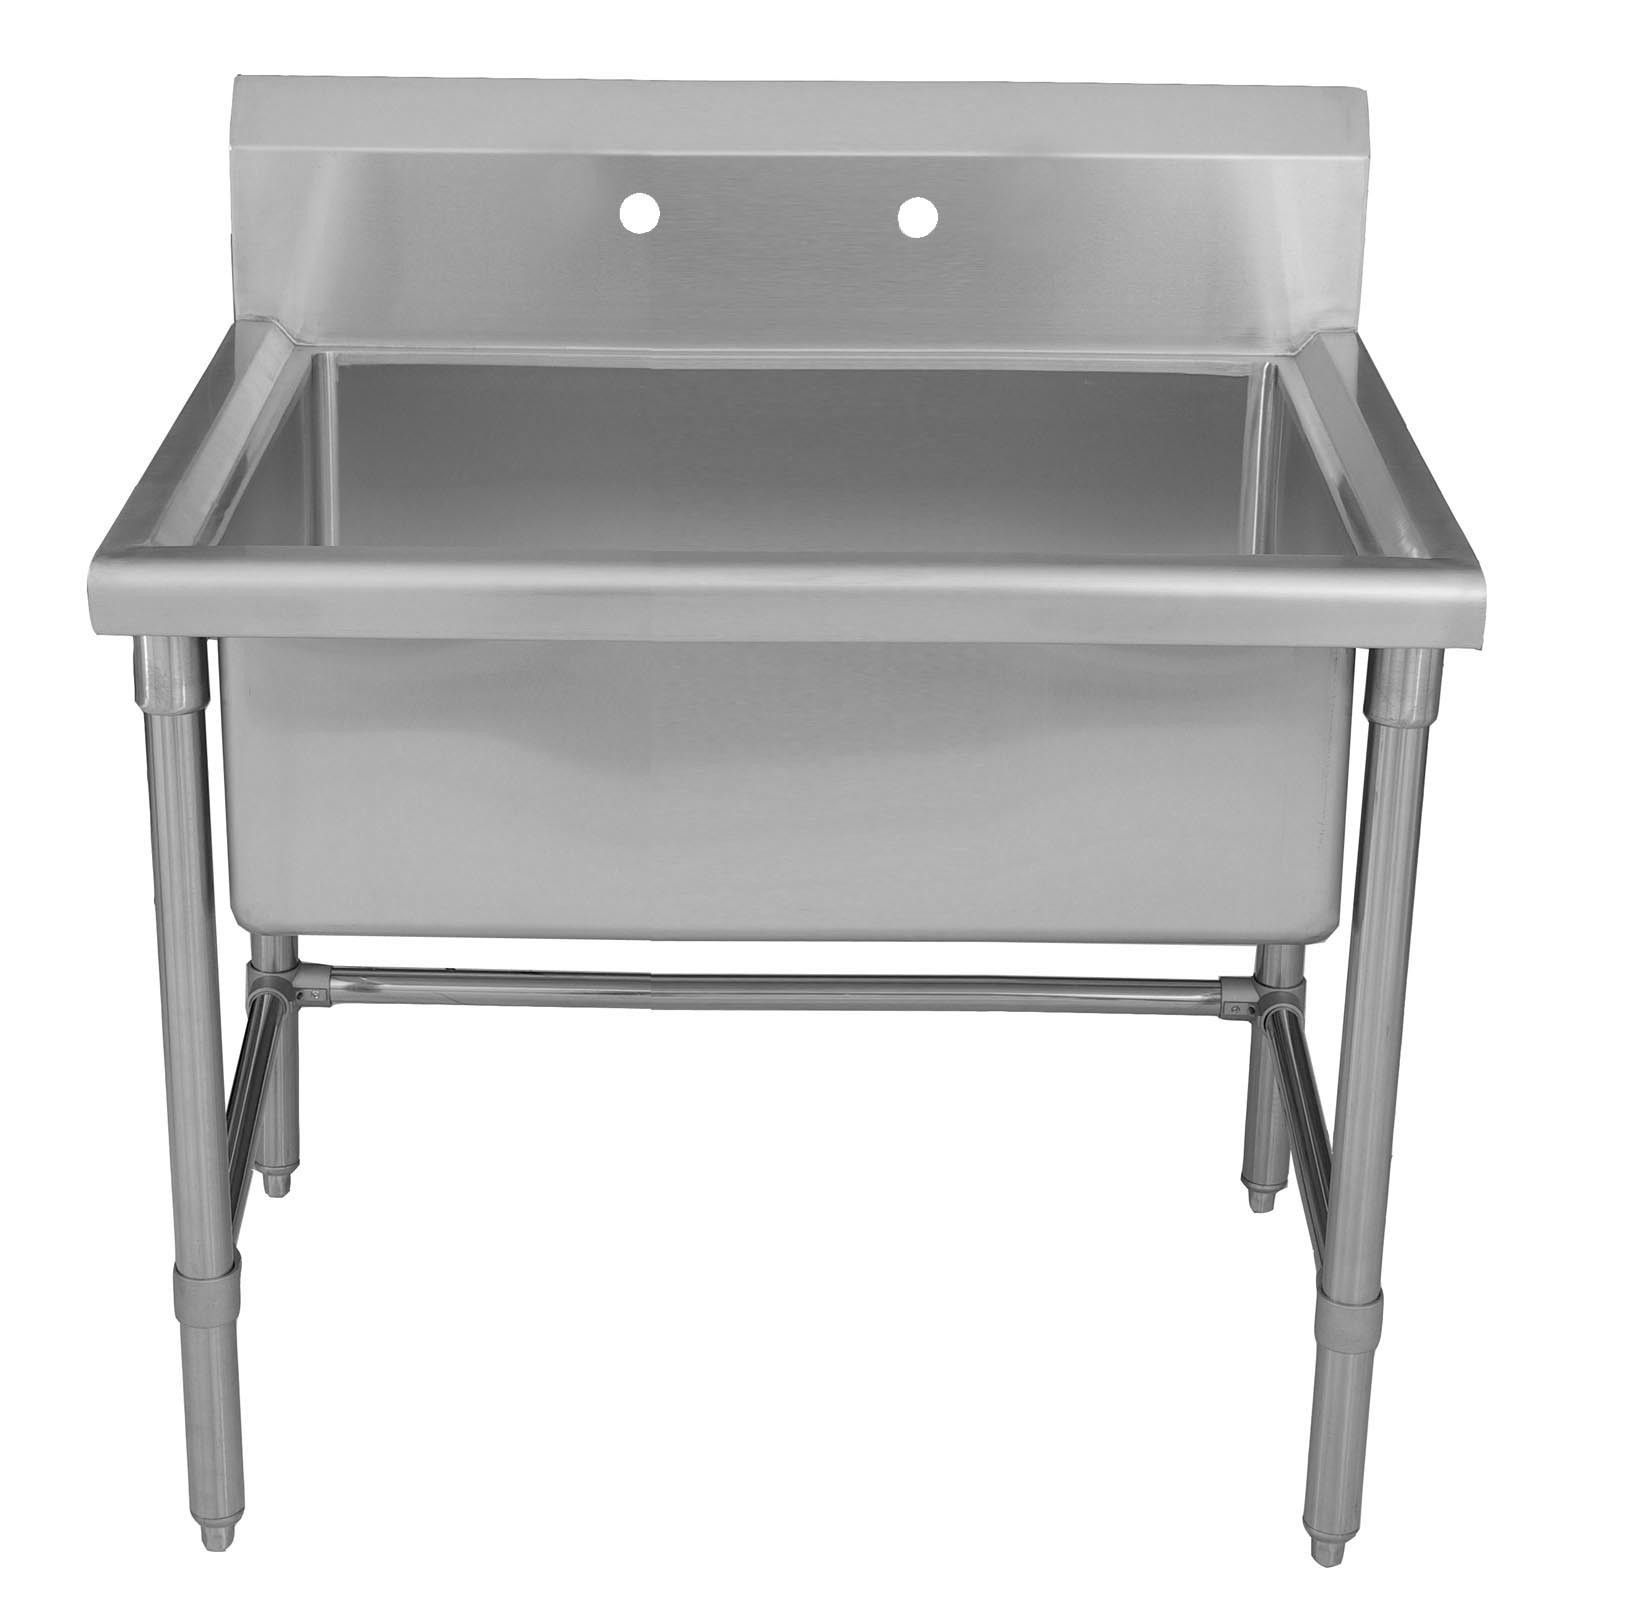 """Whitehaus WHLS3618NP 36"""" Brushed Stainless Steel"""